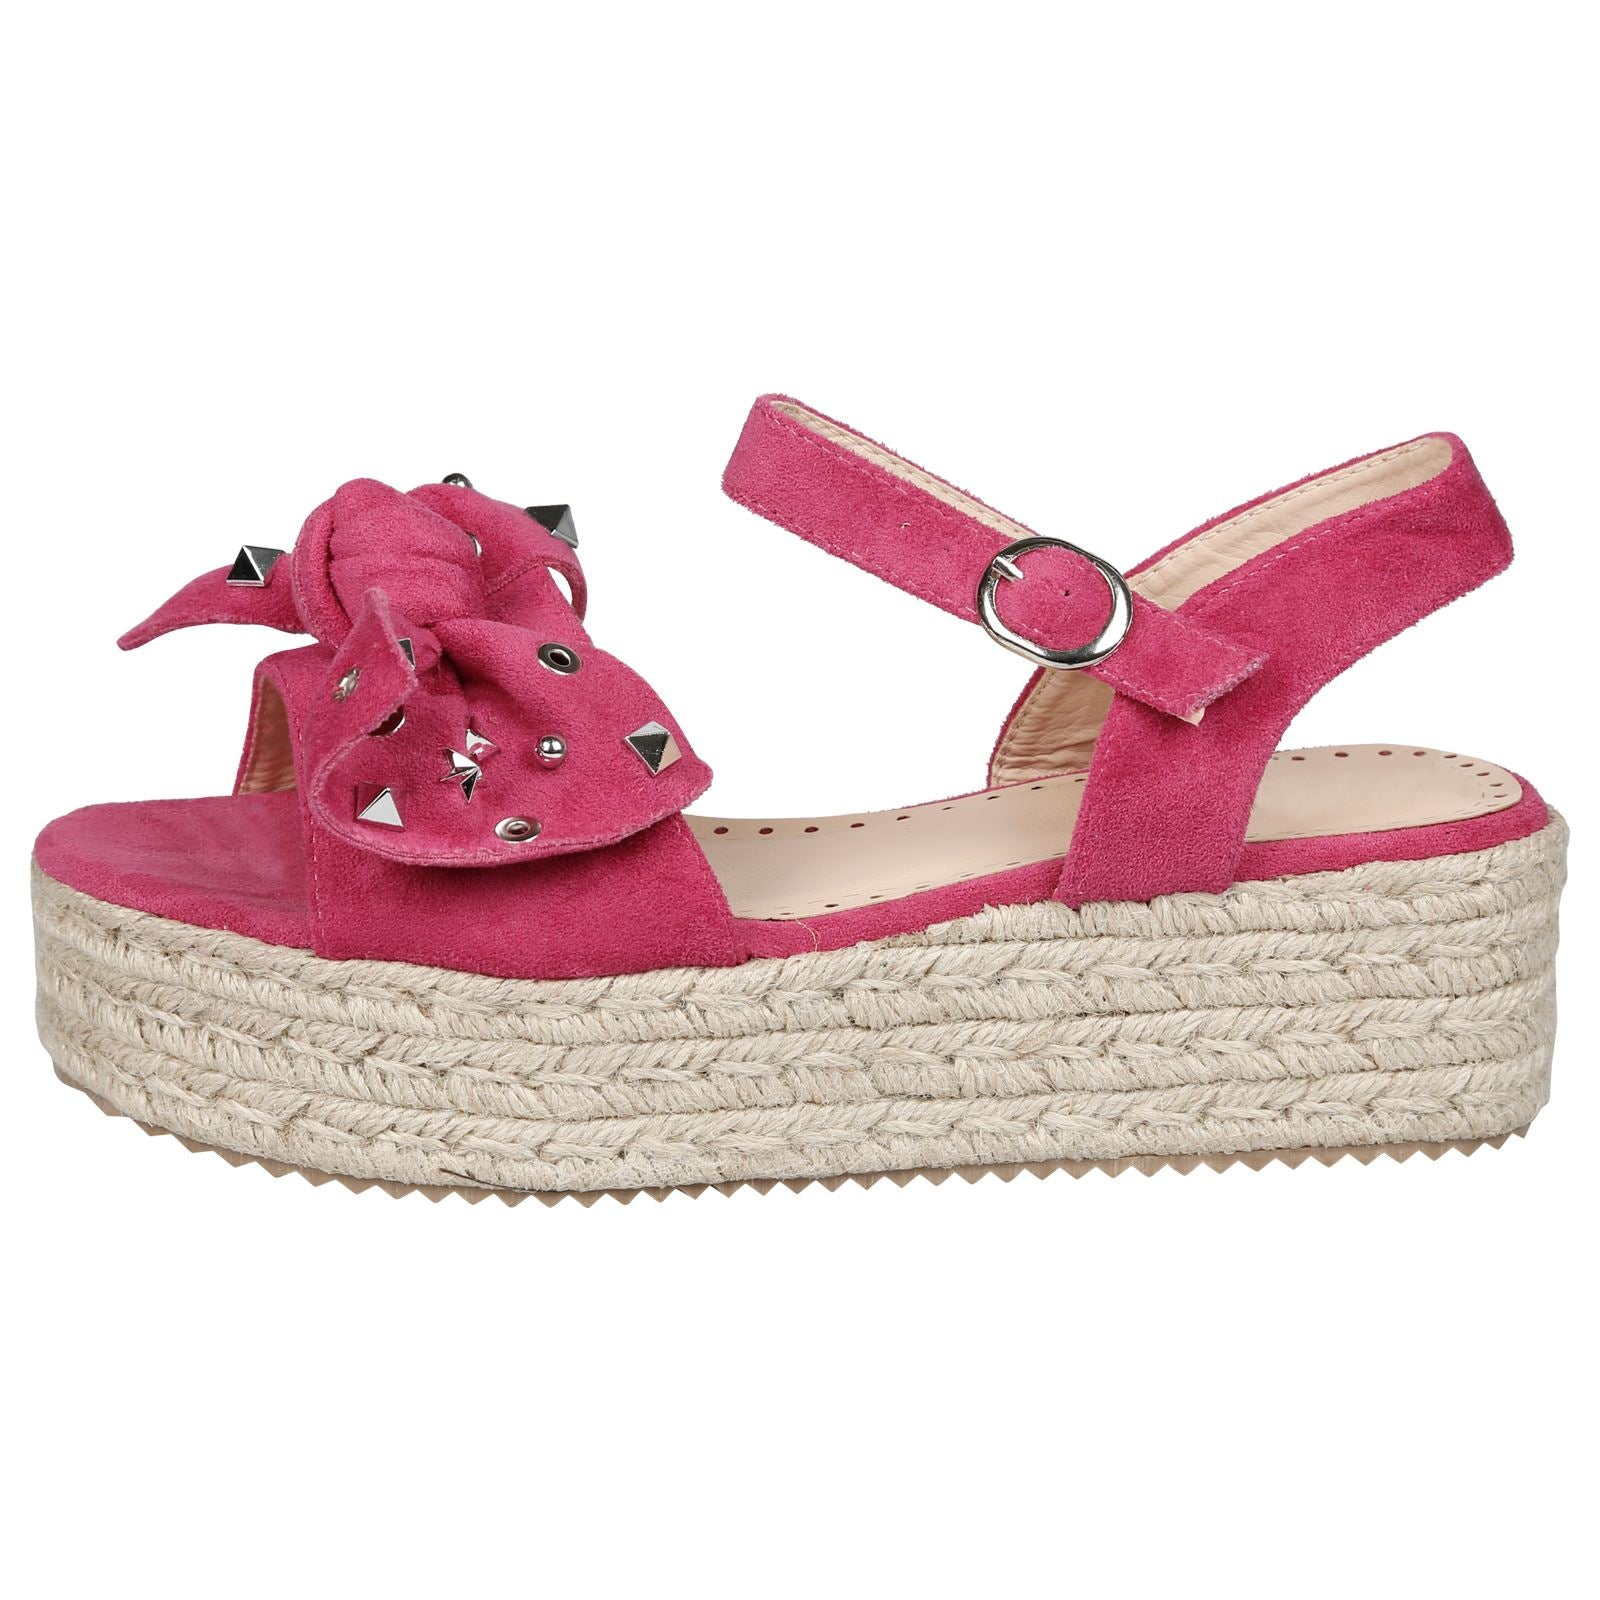 Selma Studded Bow Flatform Espadrille Sandals in Red Faux Suede